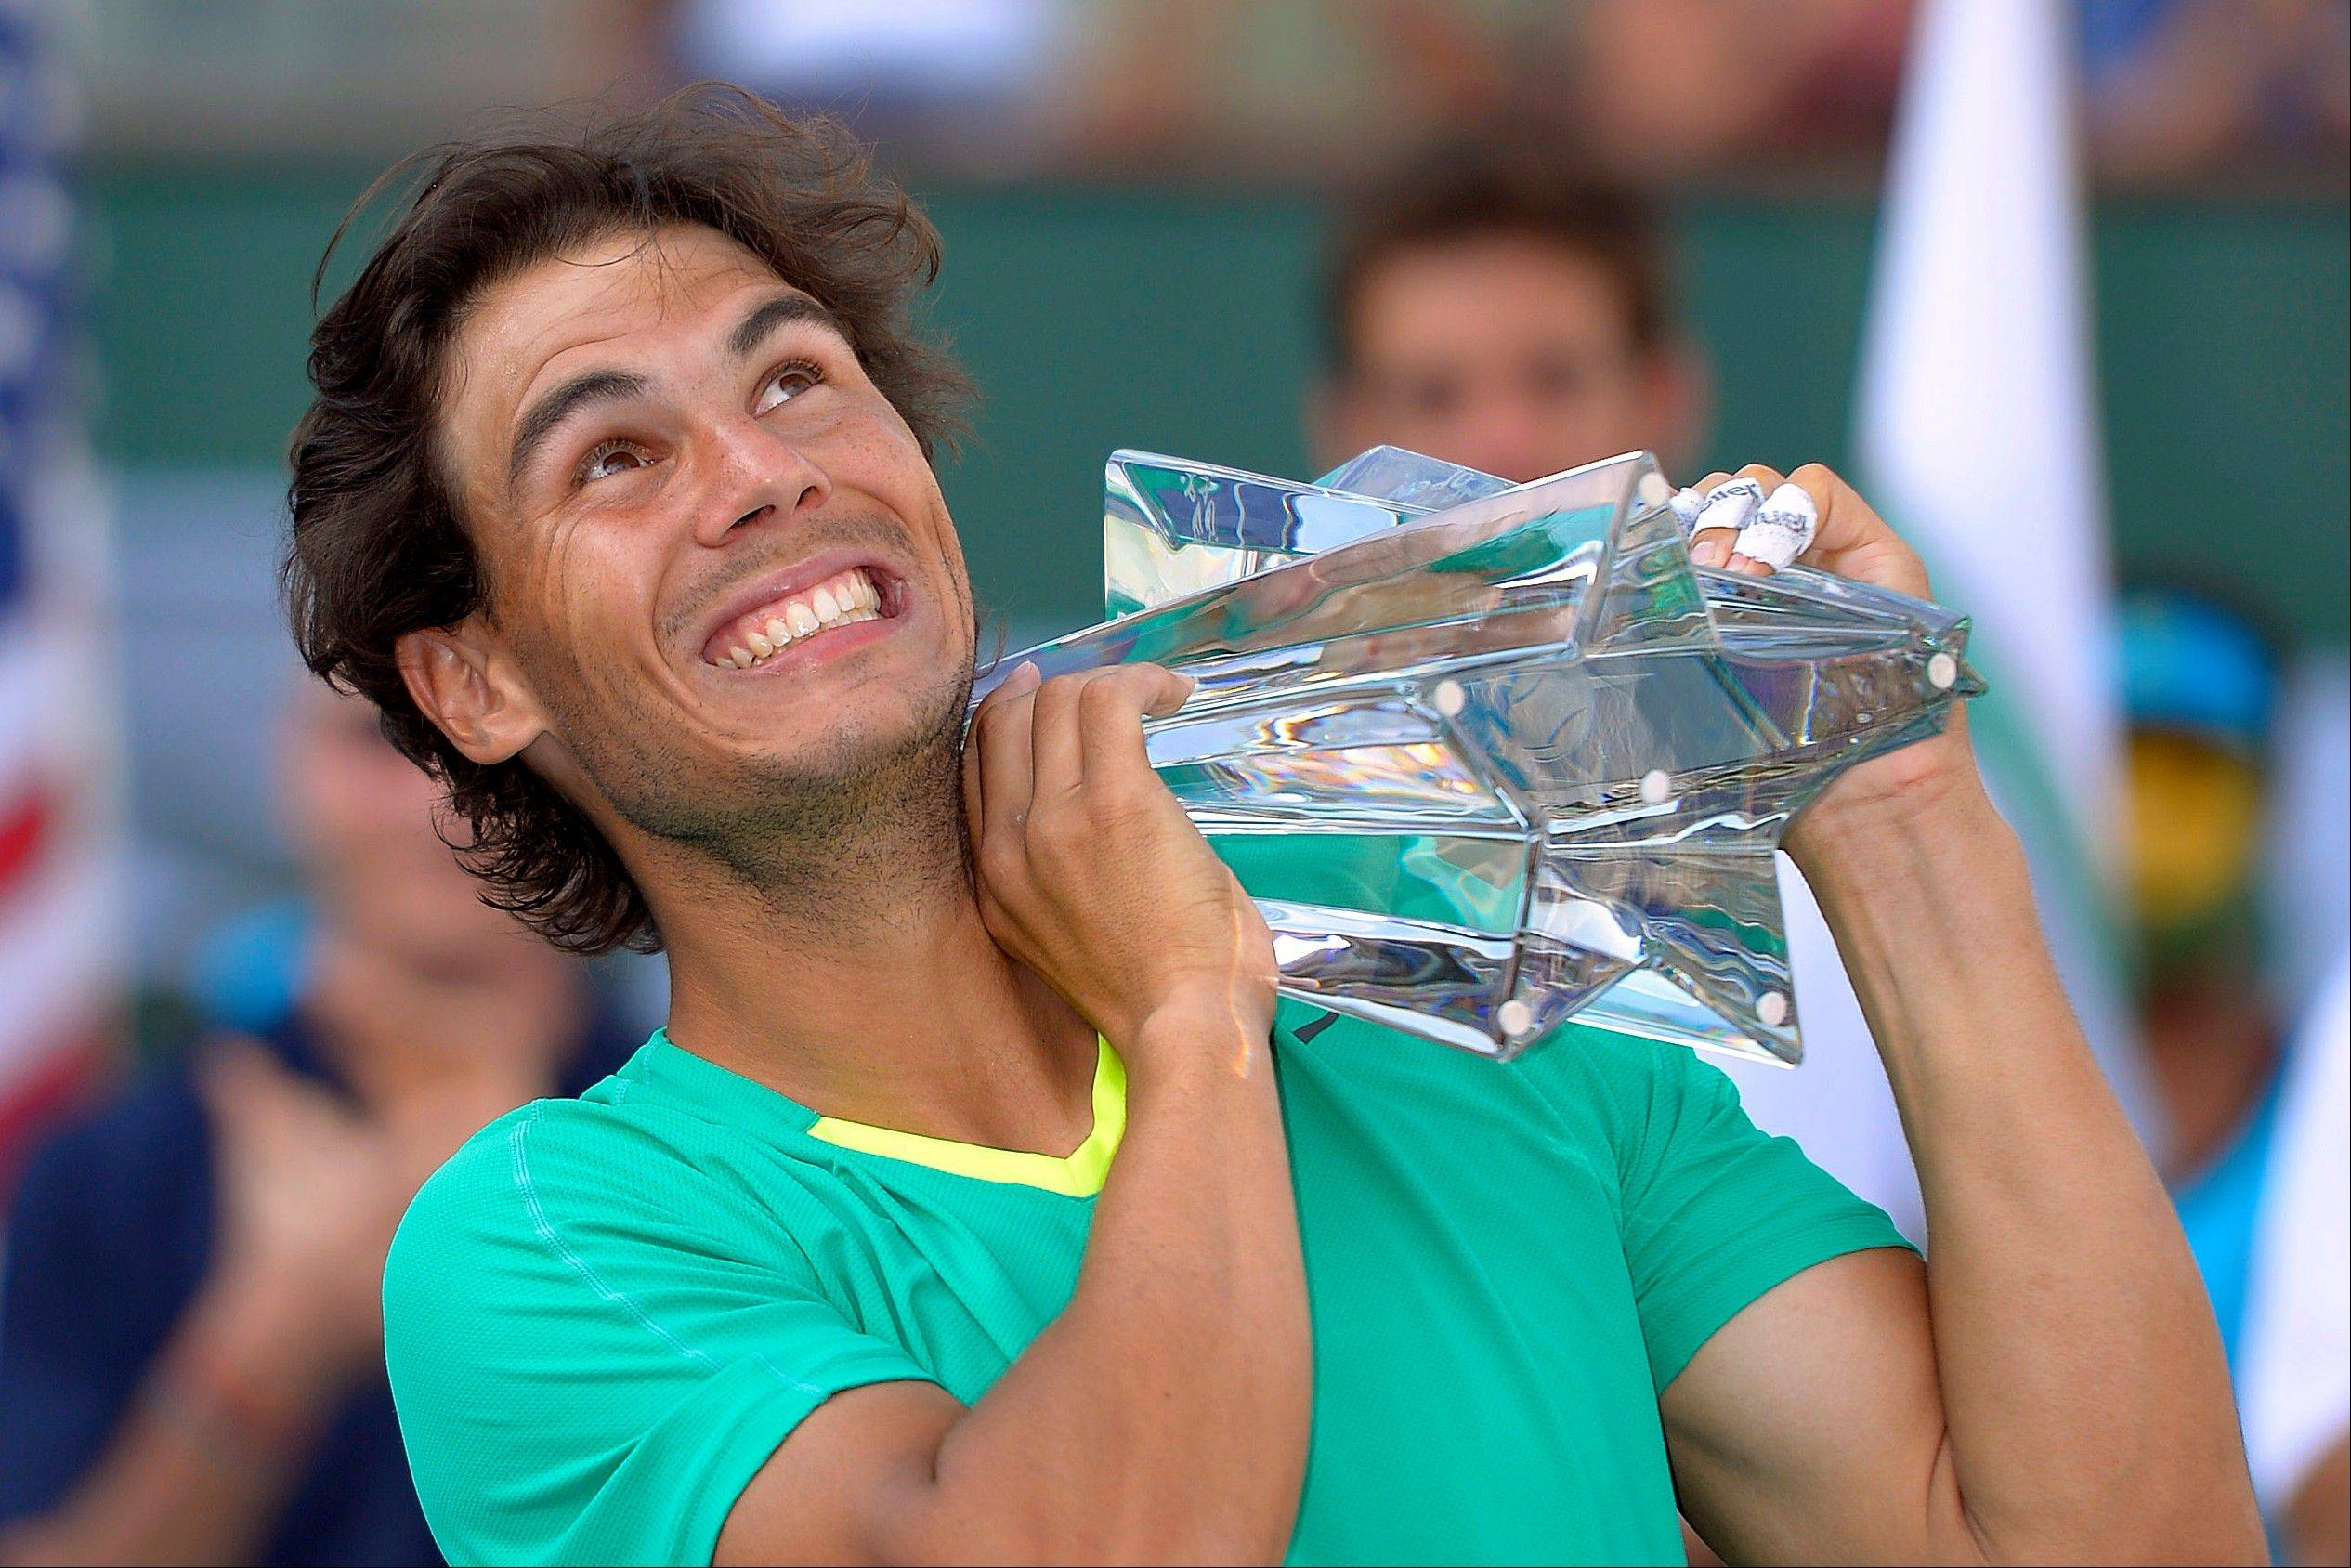 Rafael Nadal, of Spain, poses with the trophy after defeating Juan Martin del Potro, of Argentina, 4-6, 6-3, 6-4, in their match at the BNP Paribas Open tennis tournament Sunday in Indian Wells, Calif.